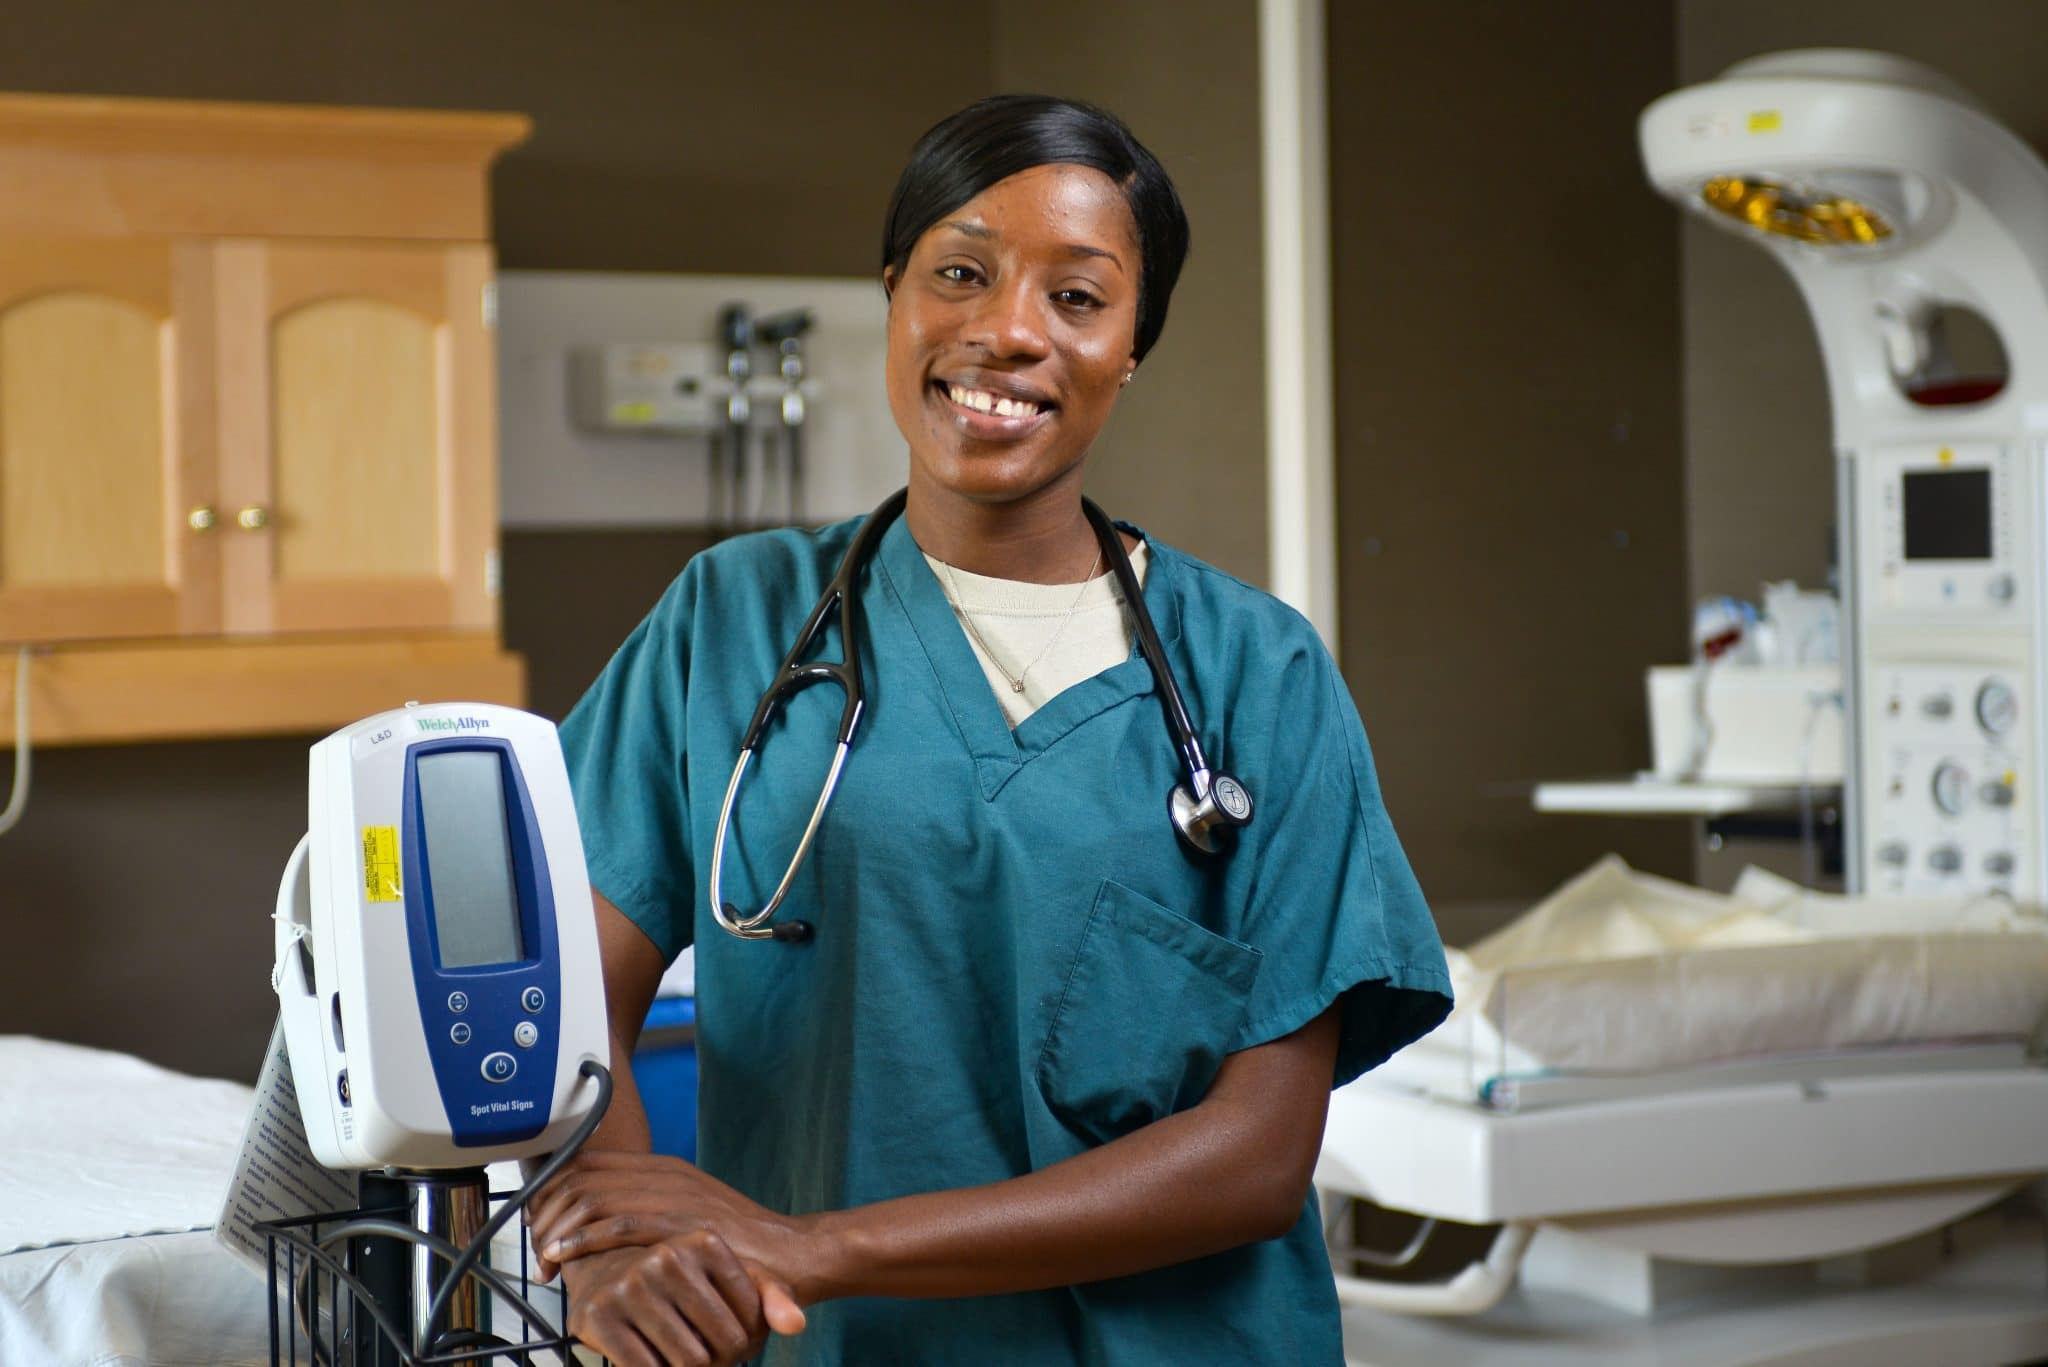 Smiling African-American healthcare professional